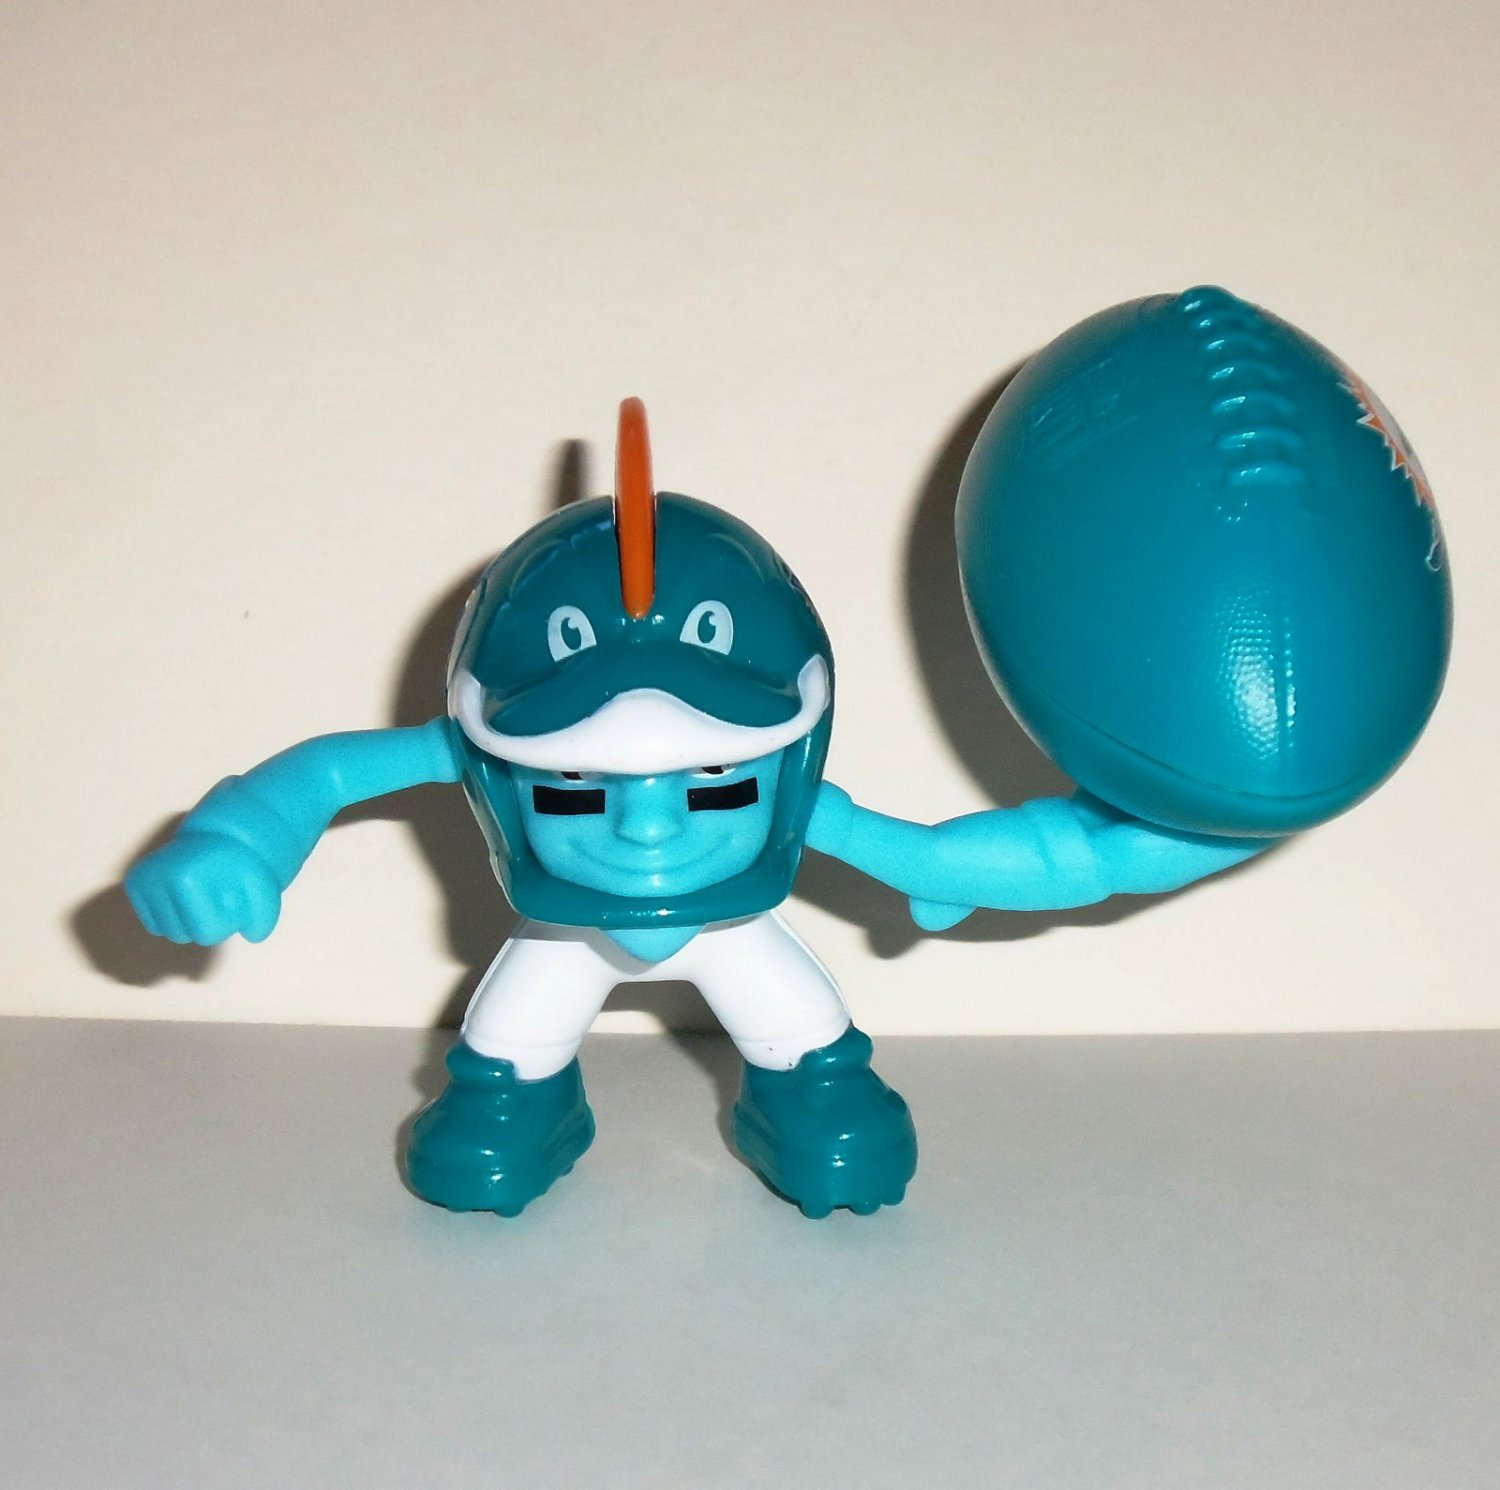 Mcdonald S Happy Meal Toys 2013 : Mcdonald s nfl rush zone miami dolphins happy meal